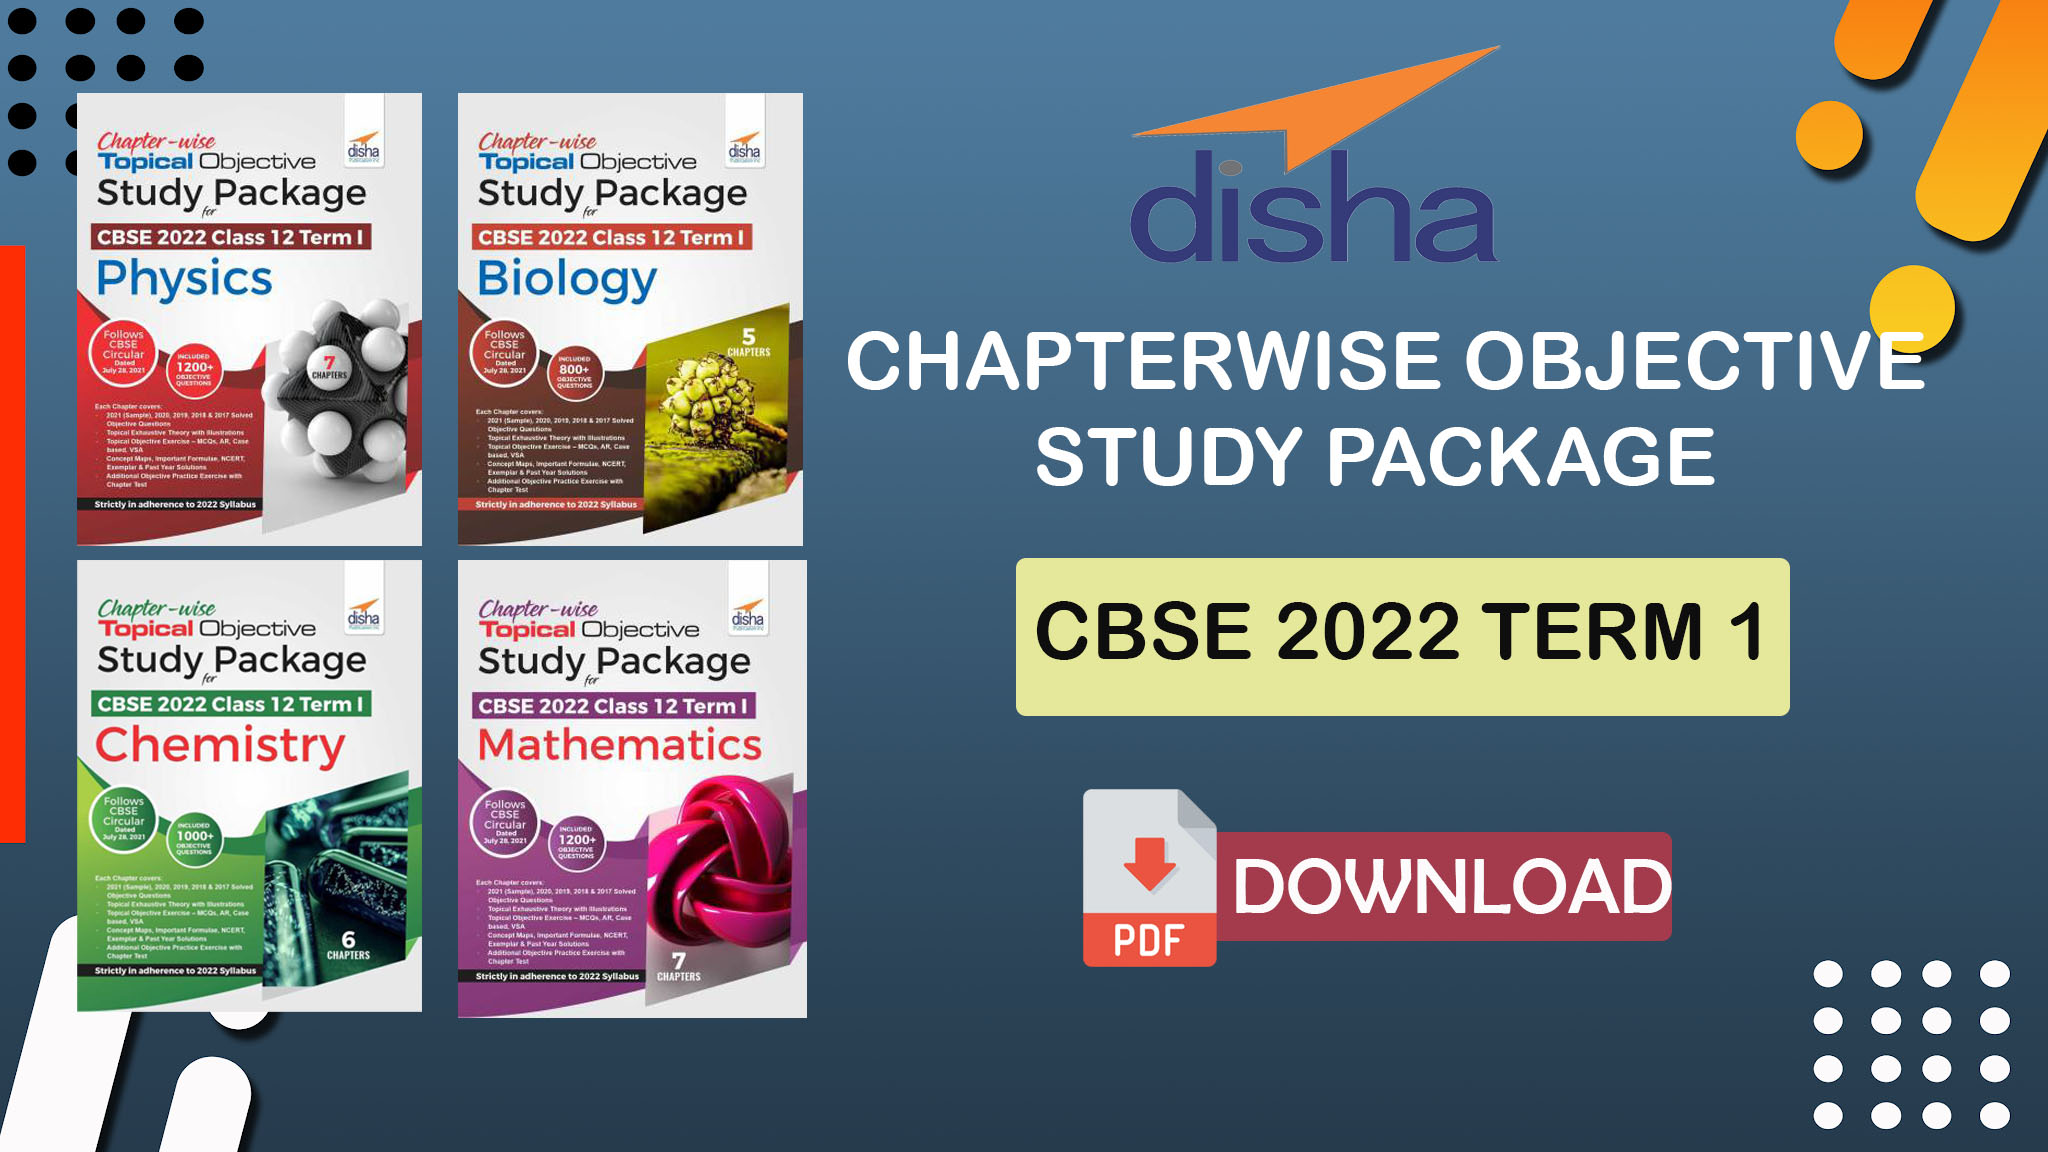 Disha Chaptewise Objective Study Package